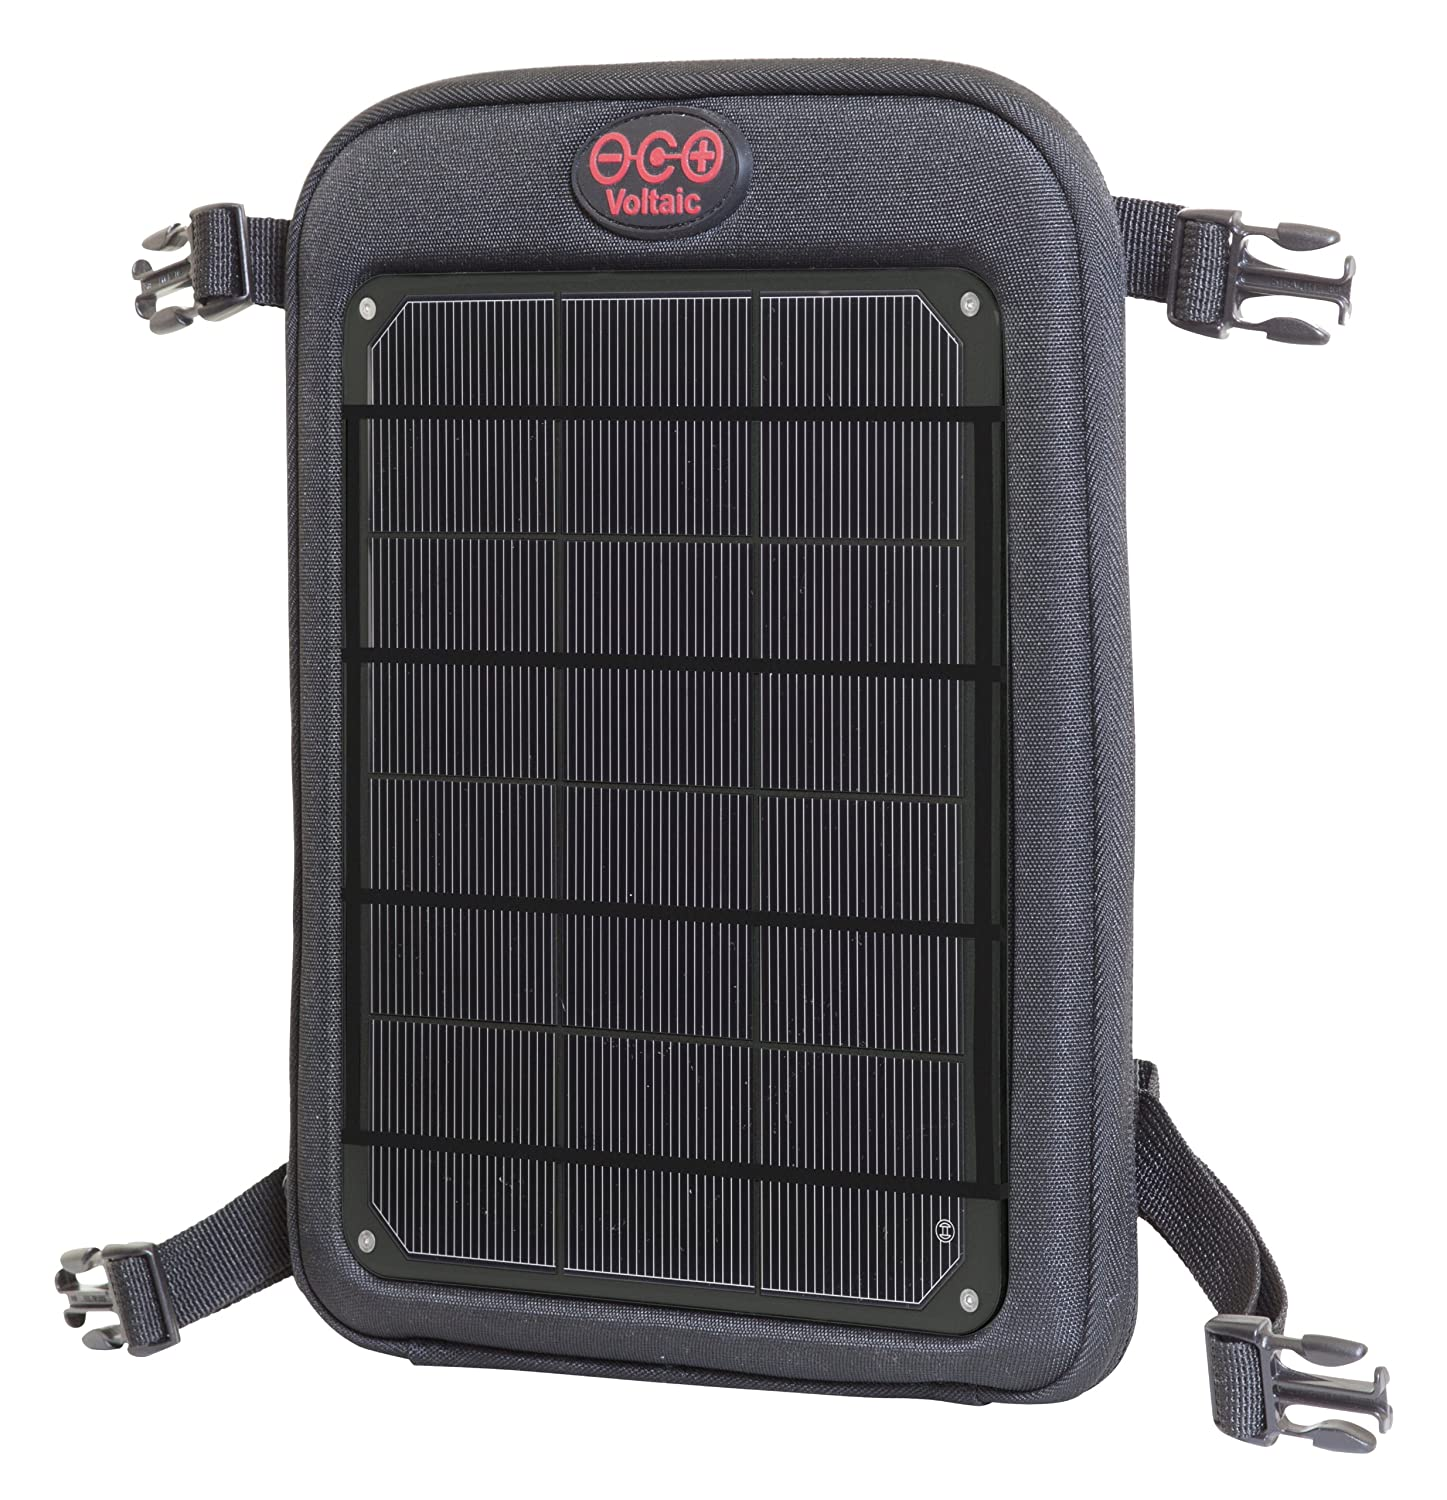 91KX8HCfOWL._SL1500_ amazon com voltaic systems fuse 6 watt usb solar charger with fuse box mobile phone backup battery review at edmiracle.co